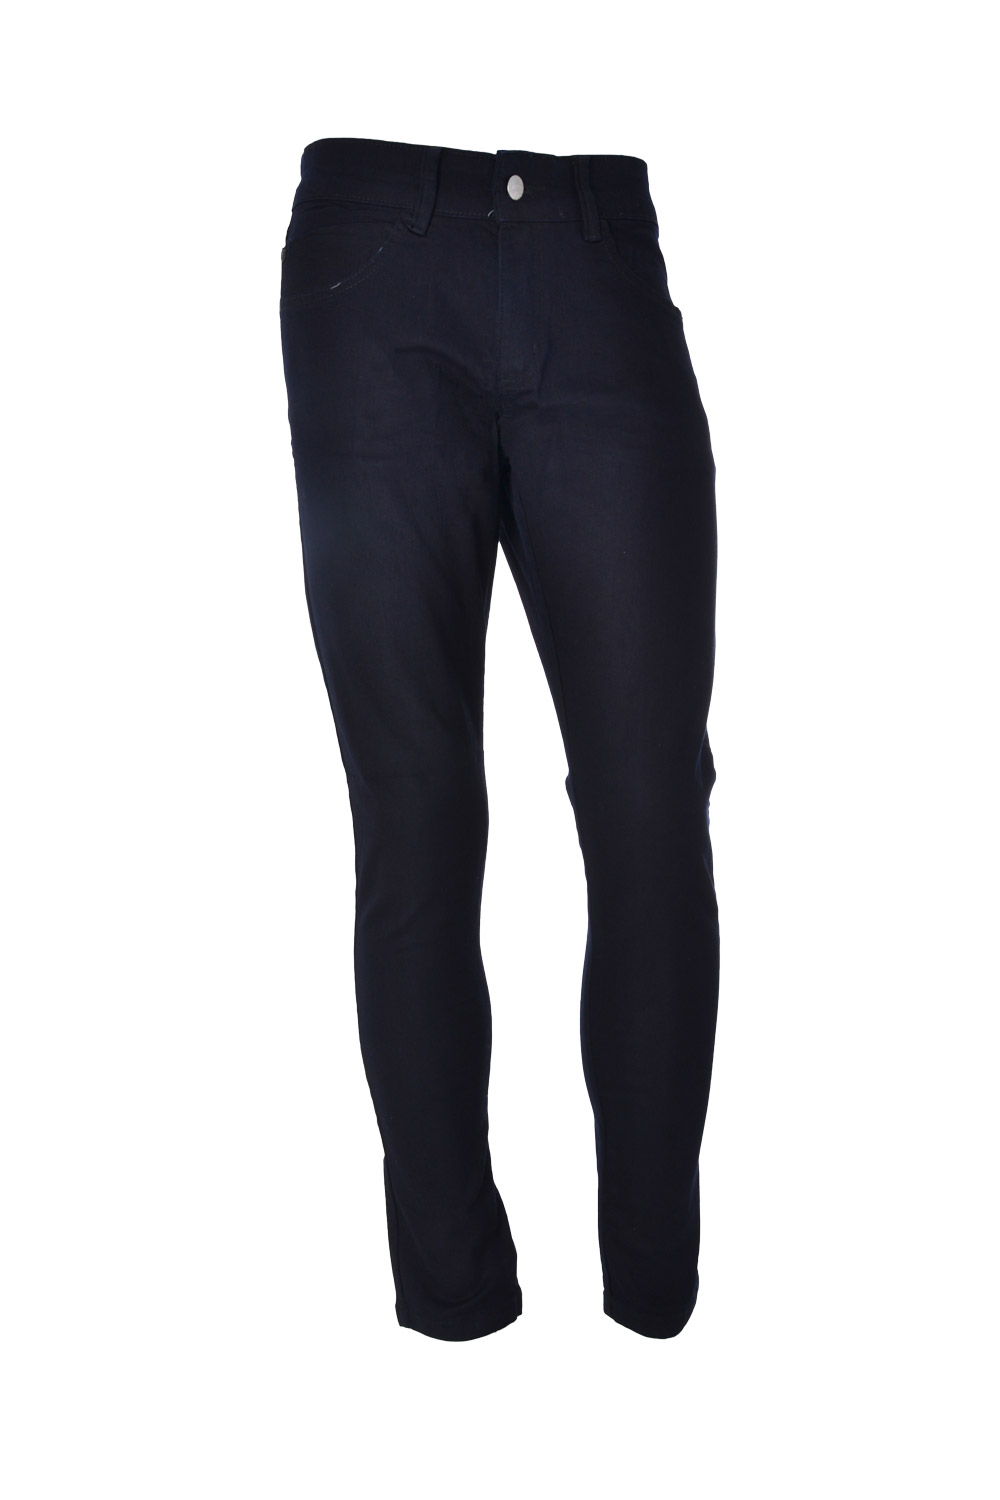 CALÇA JEANS BLUES POLIALGODAO & ELASTANO STRETCH STONED CARBOM